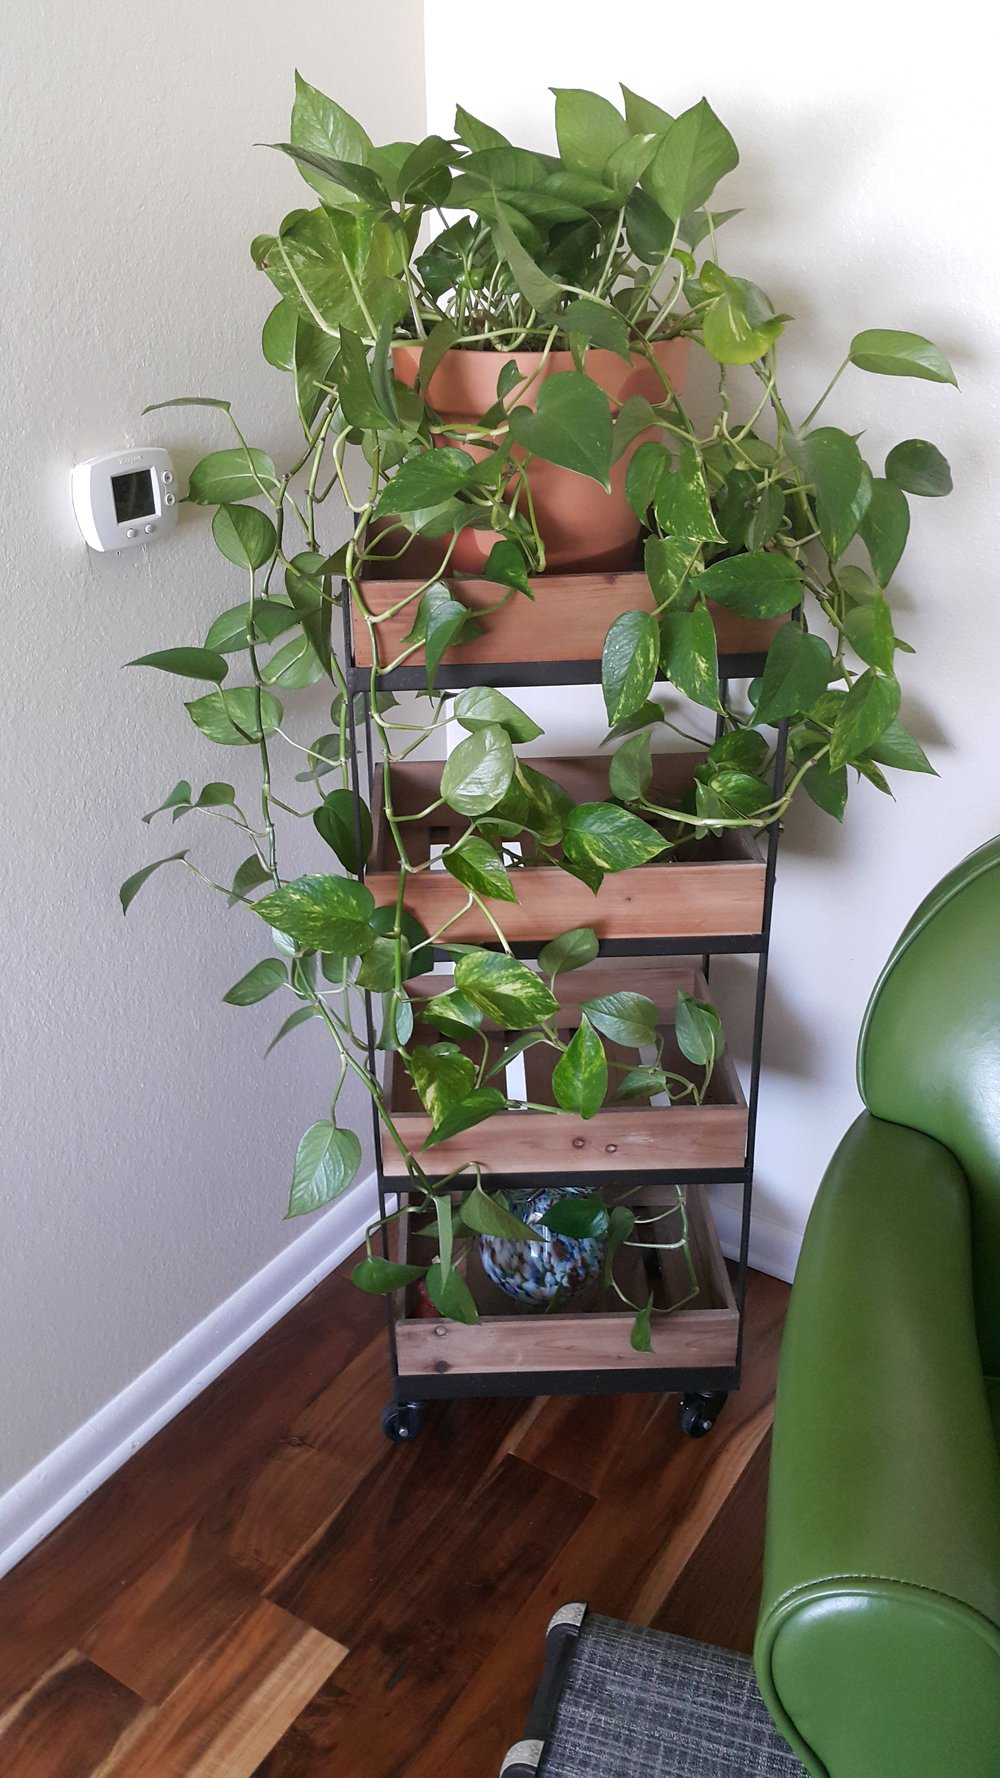 I finally repotted my pothos....she had no soil left and her roots were about 4 inches outside the old pot. (Bad plant Mamma, I know.....). She is happy again.